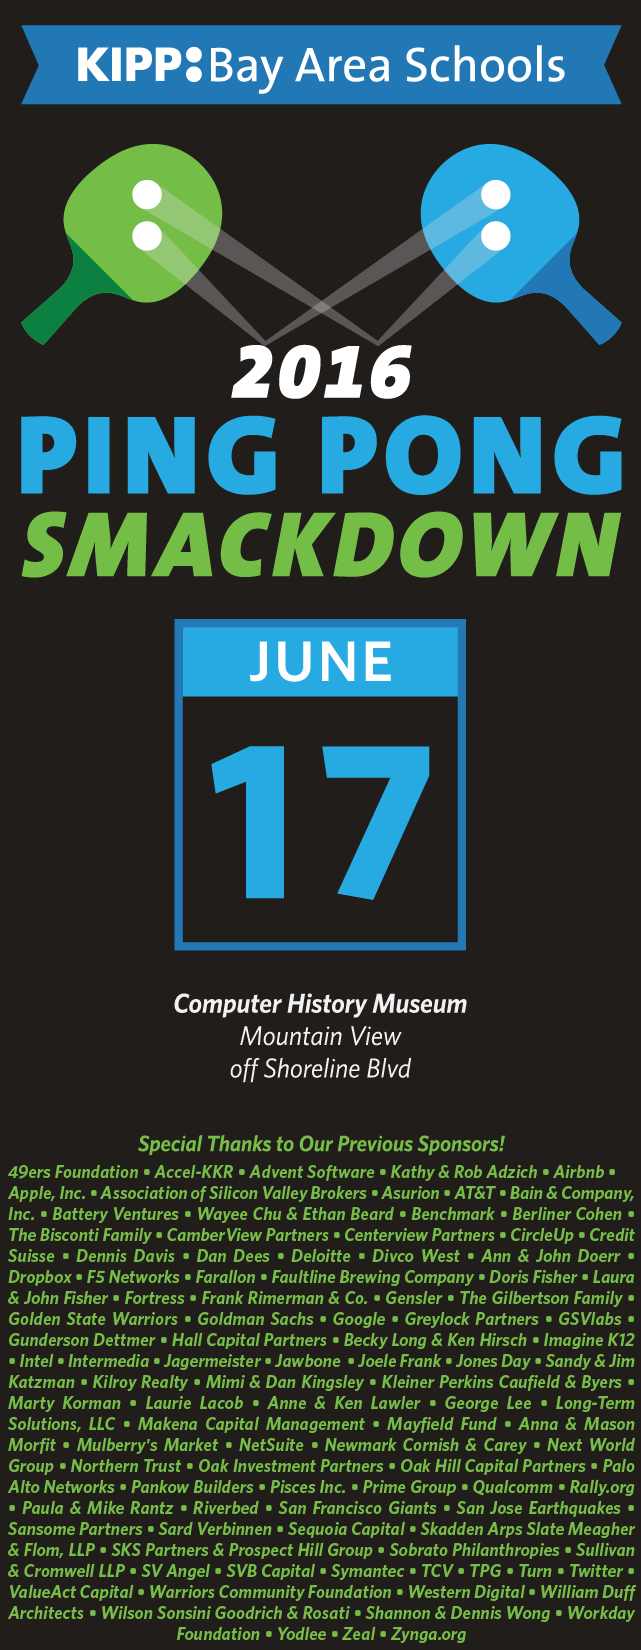 The KIPP Bay Area Schools 2016 Ping Pong Smackdown is coming on June 17, 2016 at the Computer History Museum in Mountain View. Questions? Contact zach.reisler@kippbayarea.org.